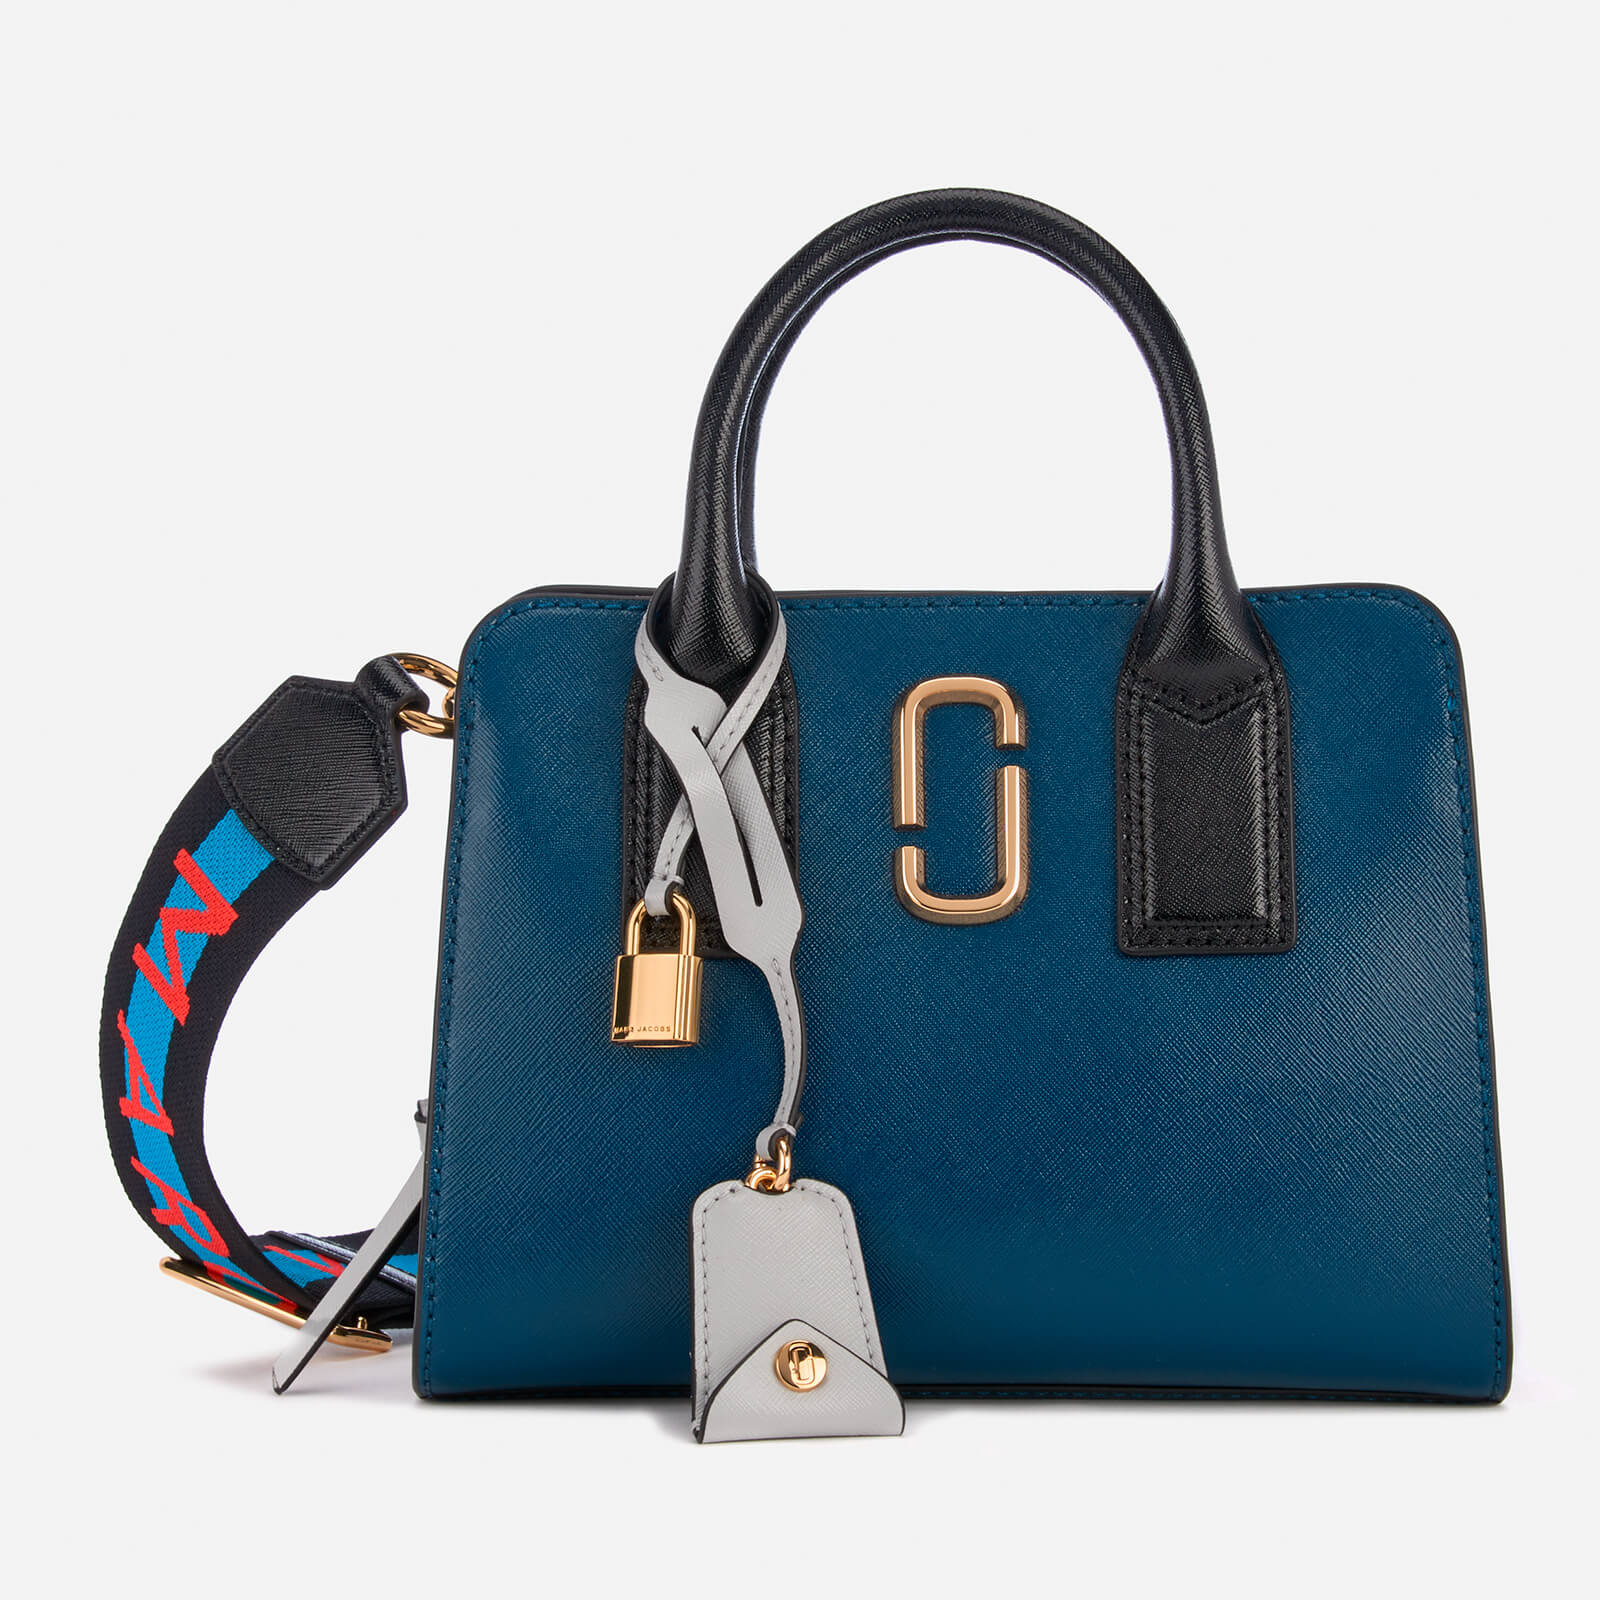 b769ac2a53cb3 Marc Jacobs Women s Little Big Shot Tote Bag - Blue Sea Multi - Free UK  Delivery over £50